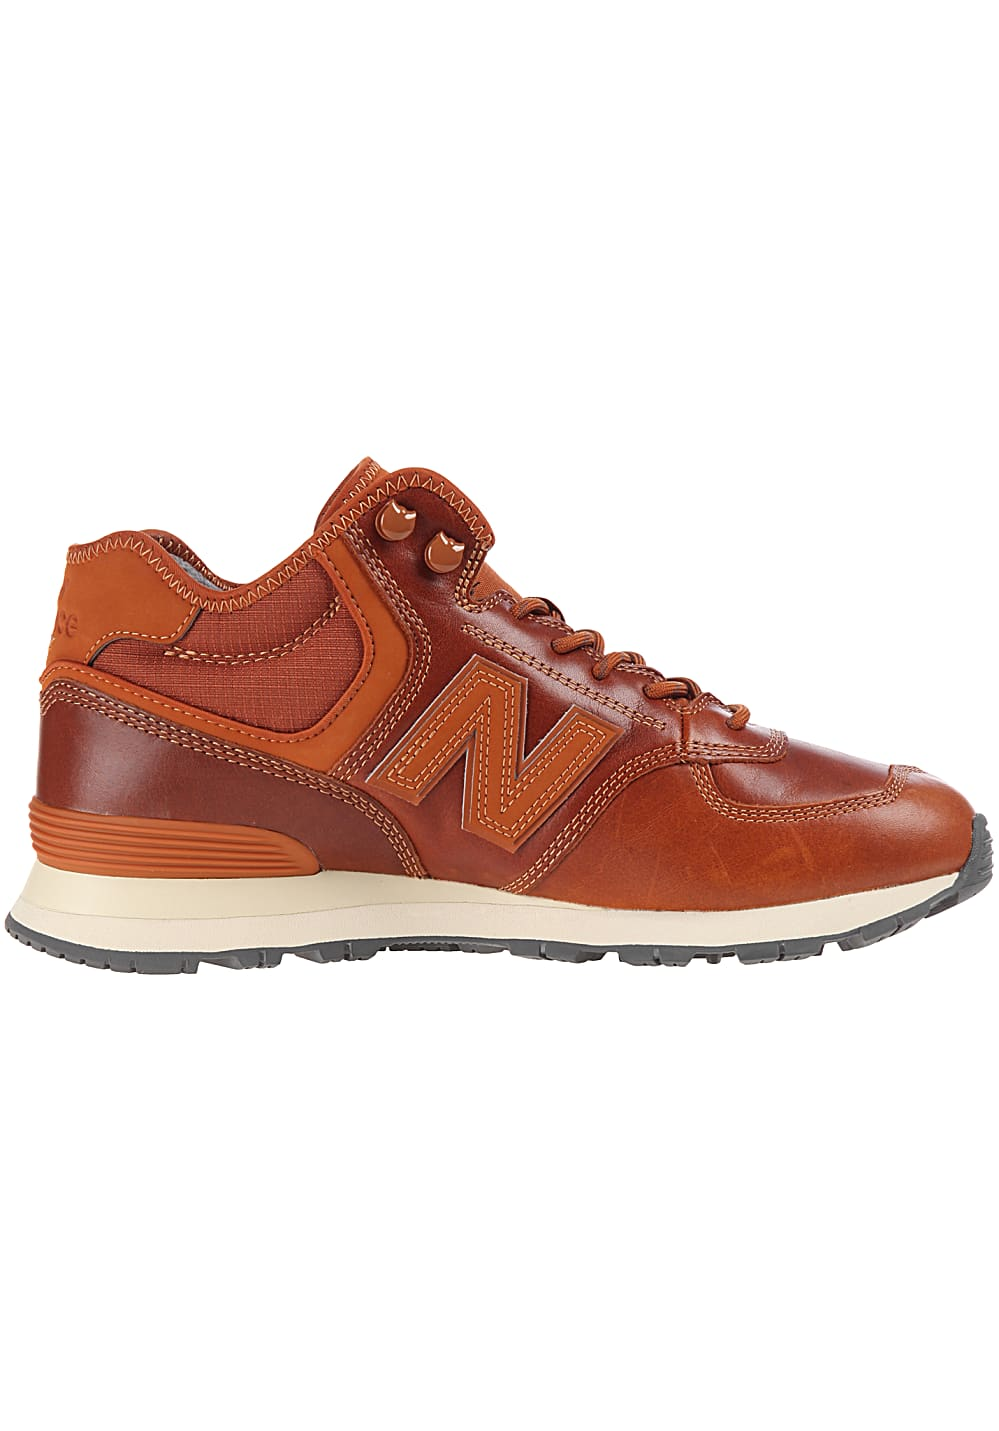 new styles 6b4d6 efb32 NEW BALANCE MH574 - Sneakers for Men - Brown